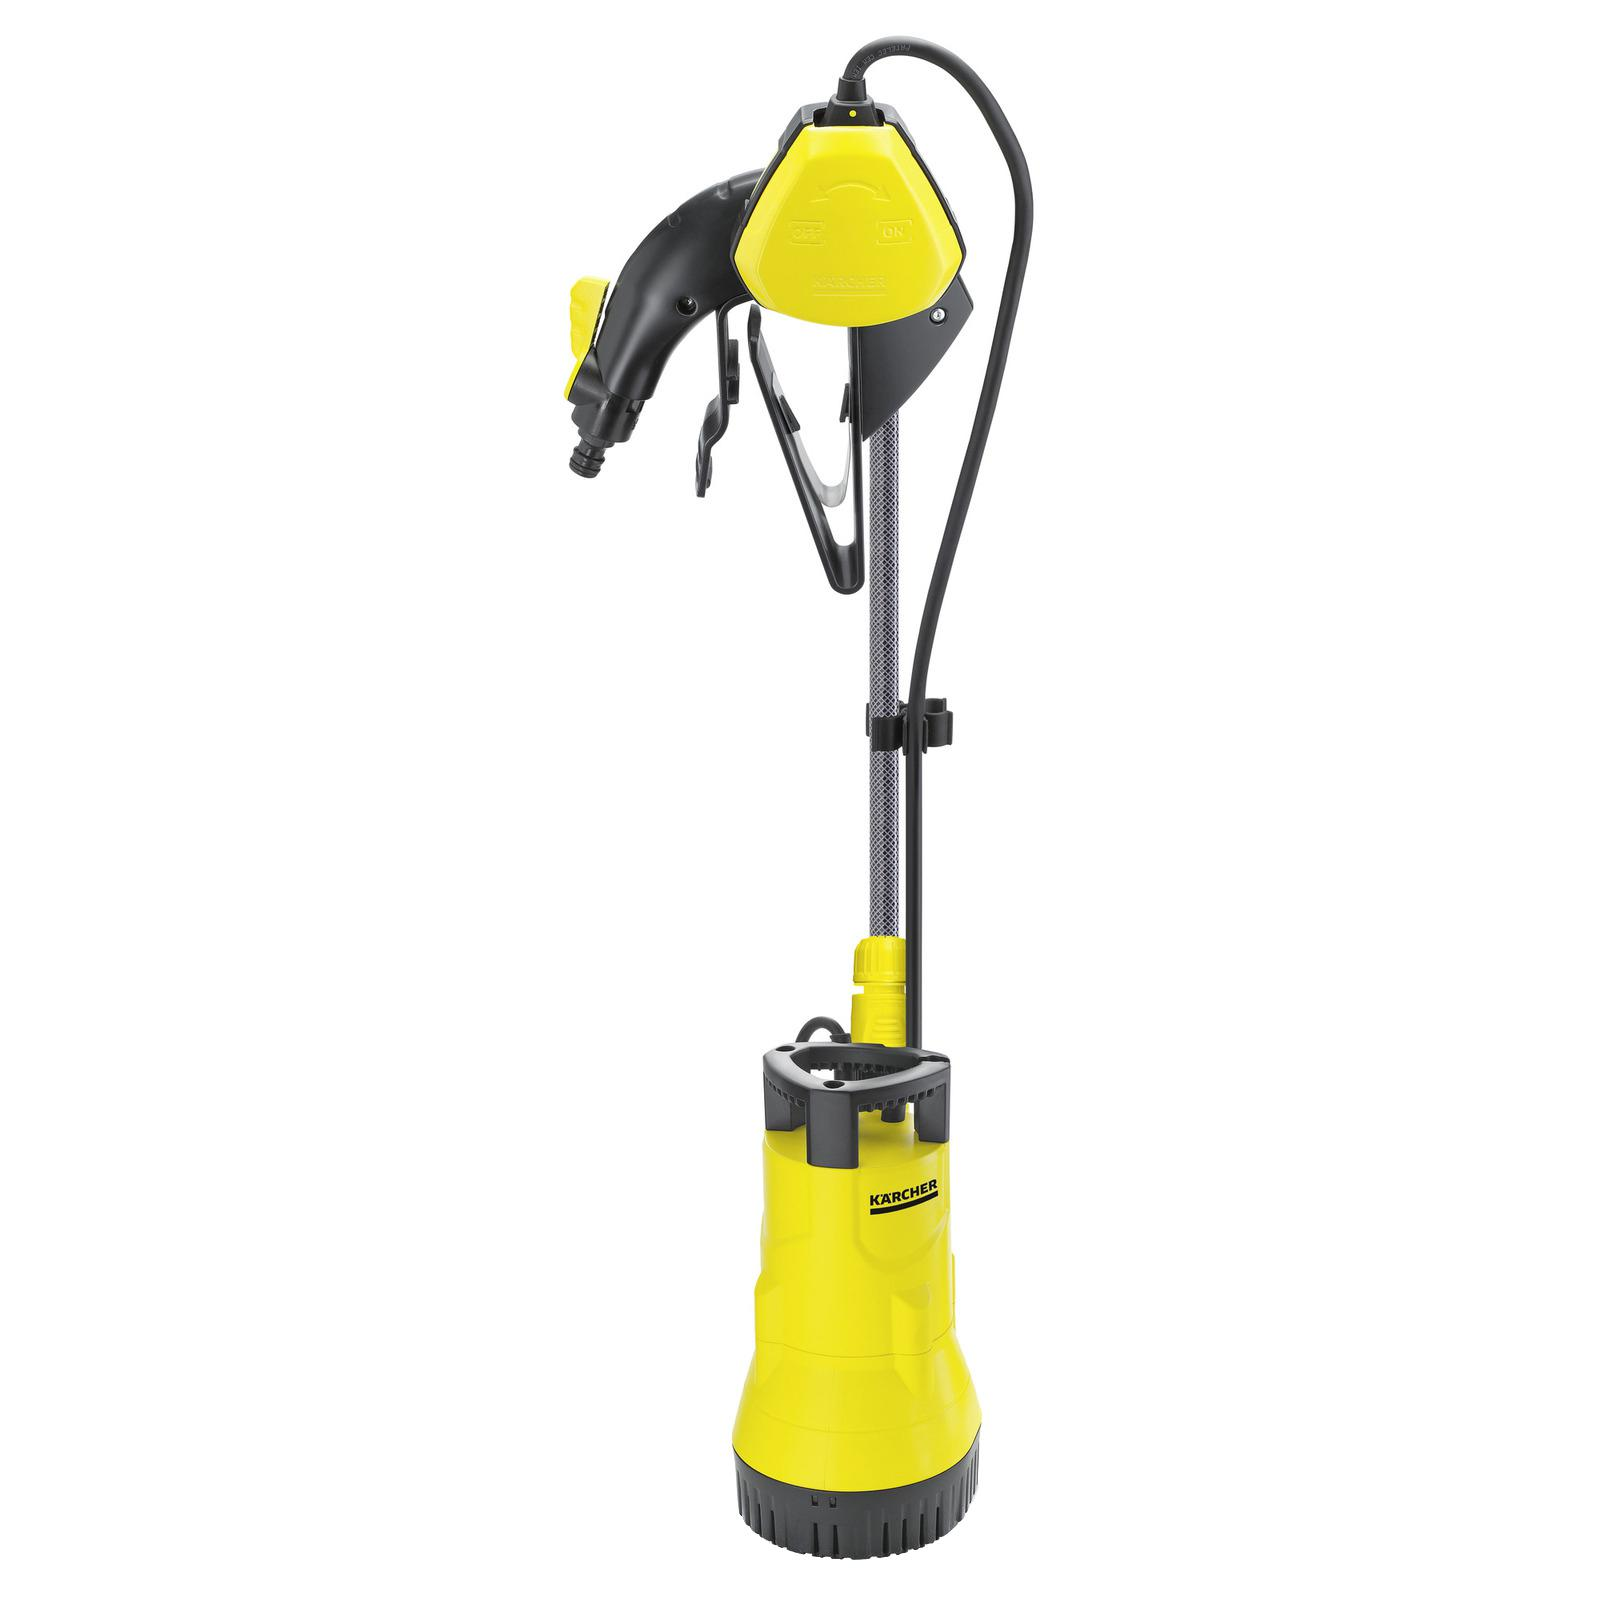 Бочковой насос Karcher Bp 1 barrel насосная станция karcher bp 5 home